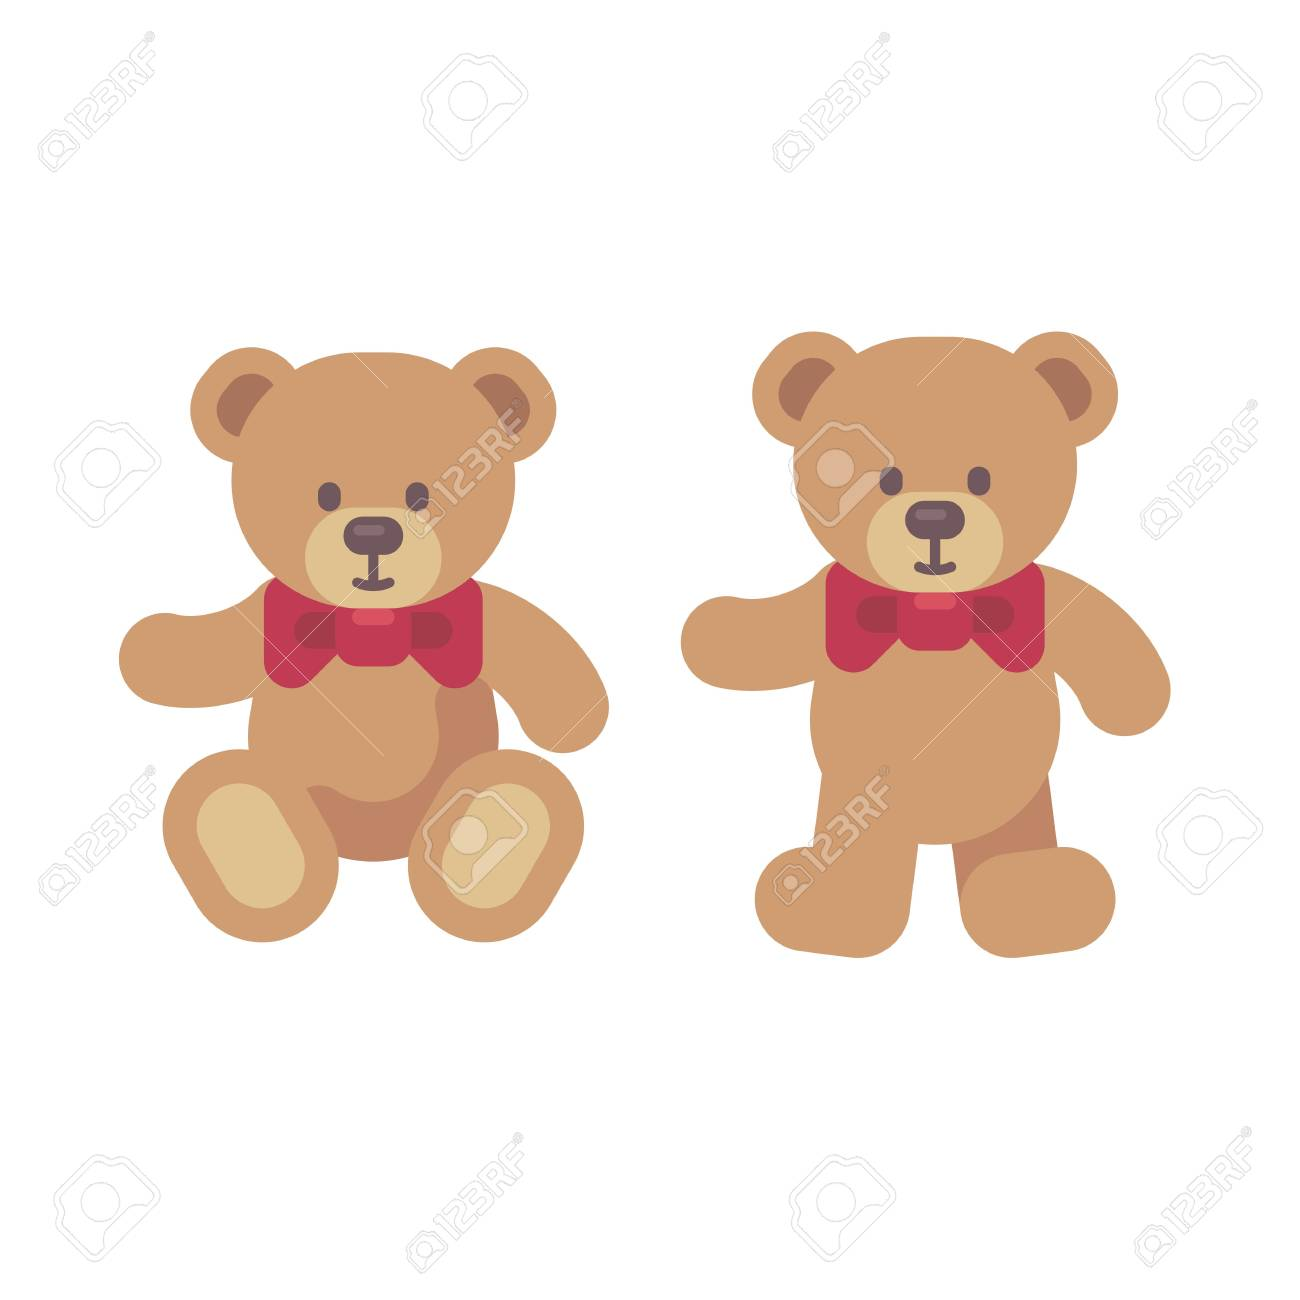 teddy bear toys sitting and standing flat illustration christmas